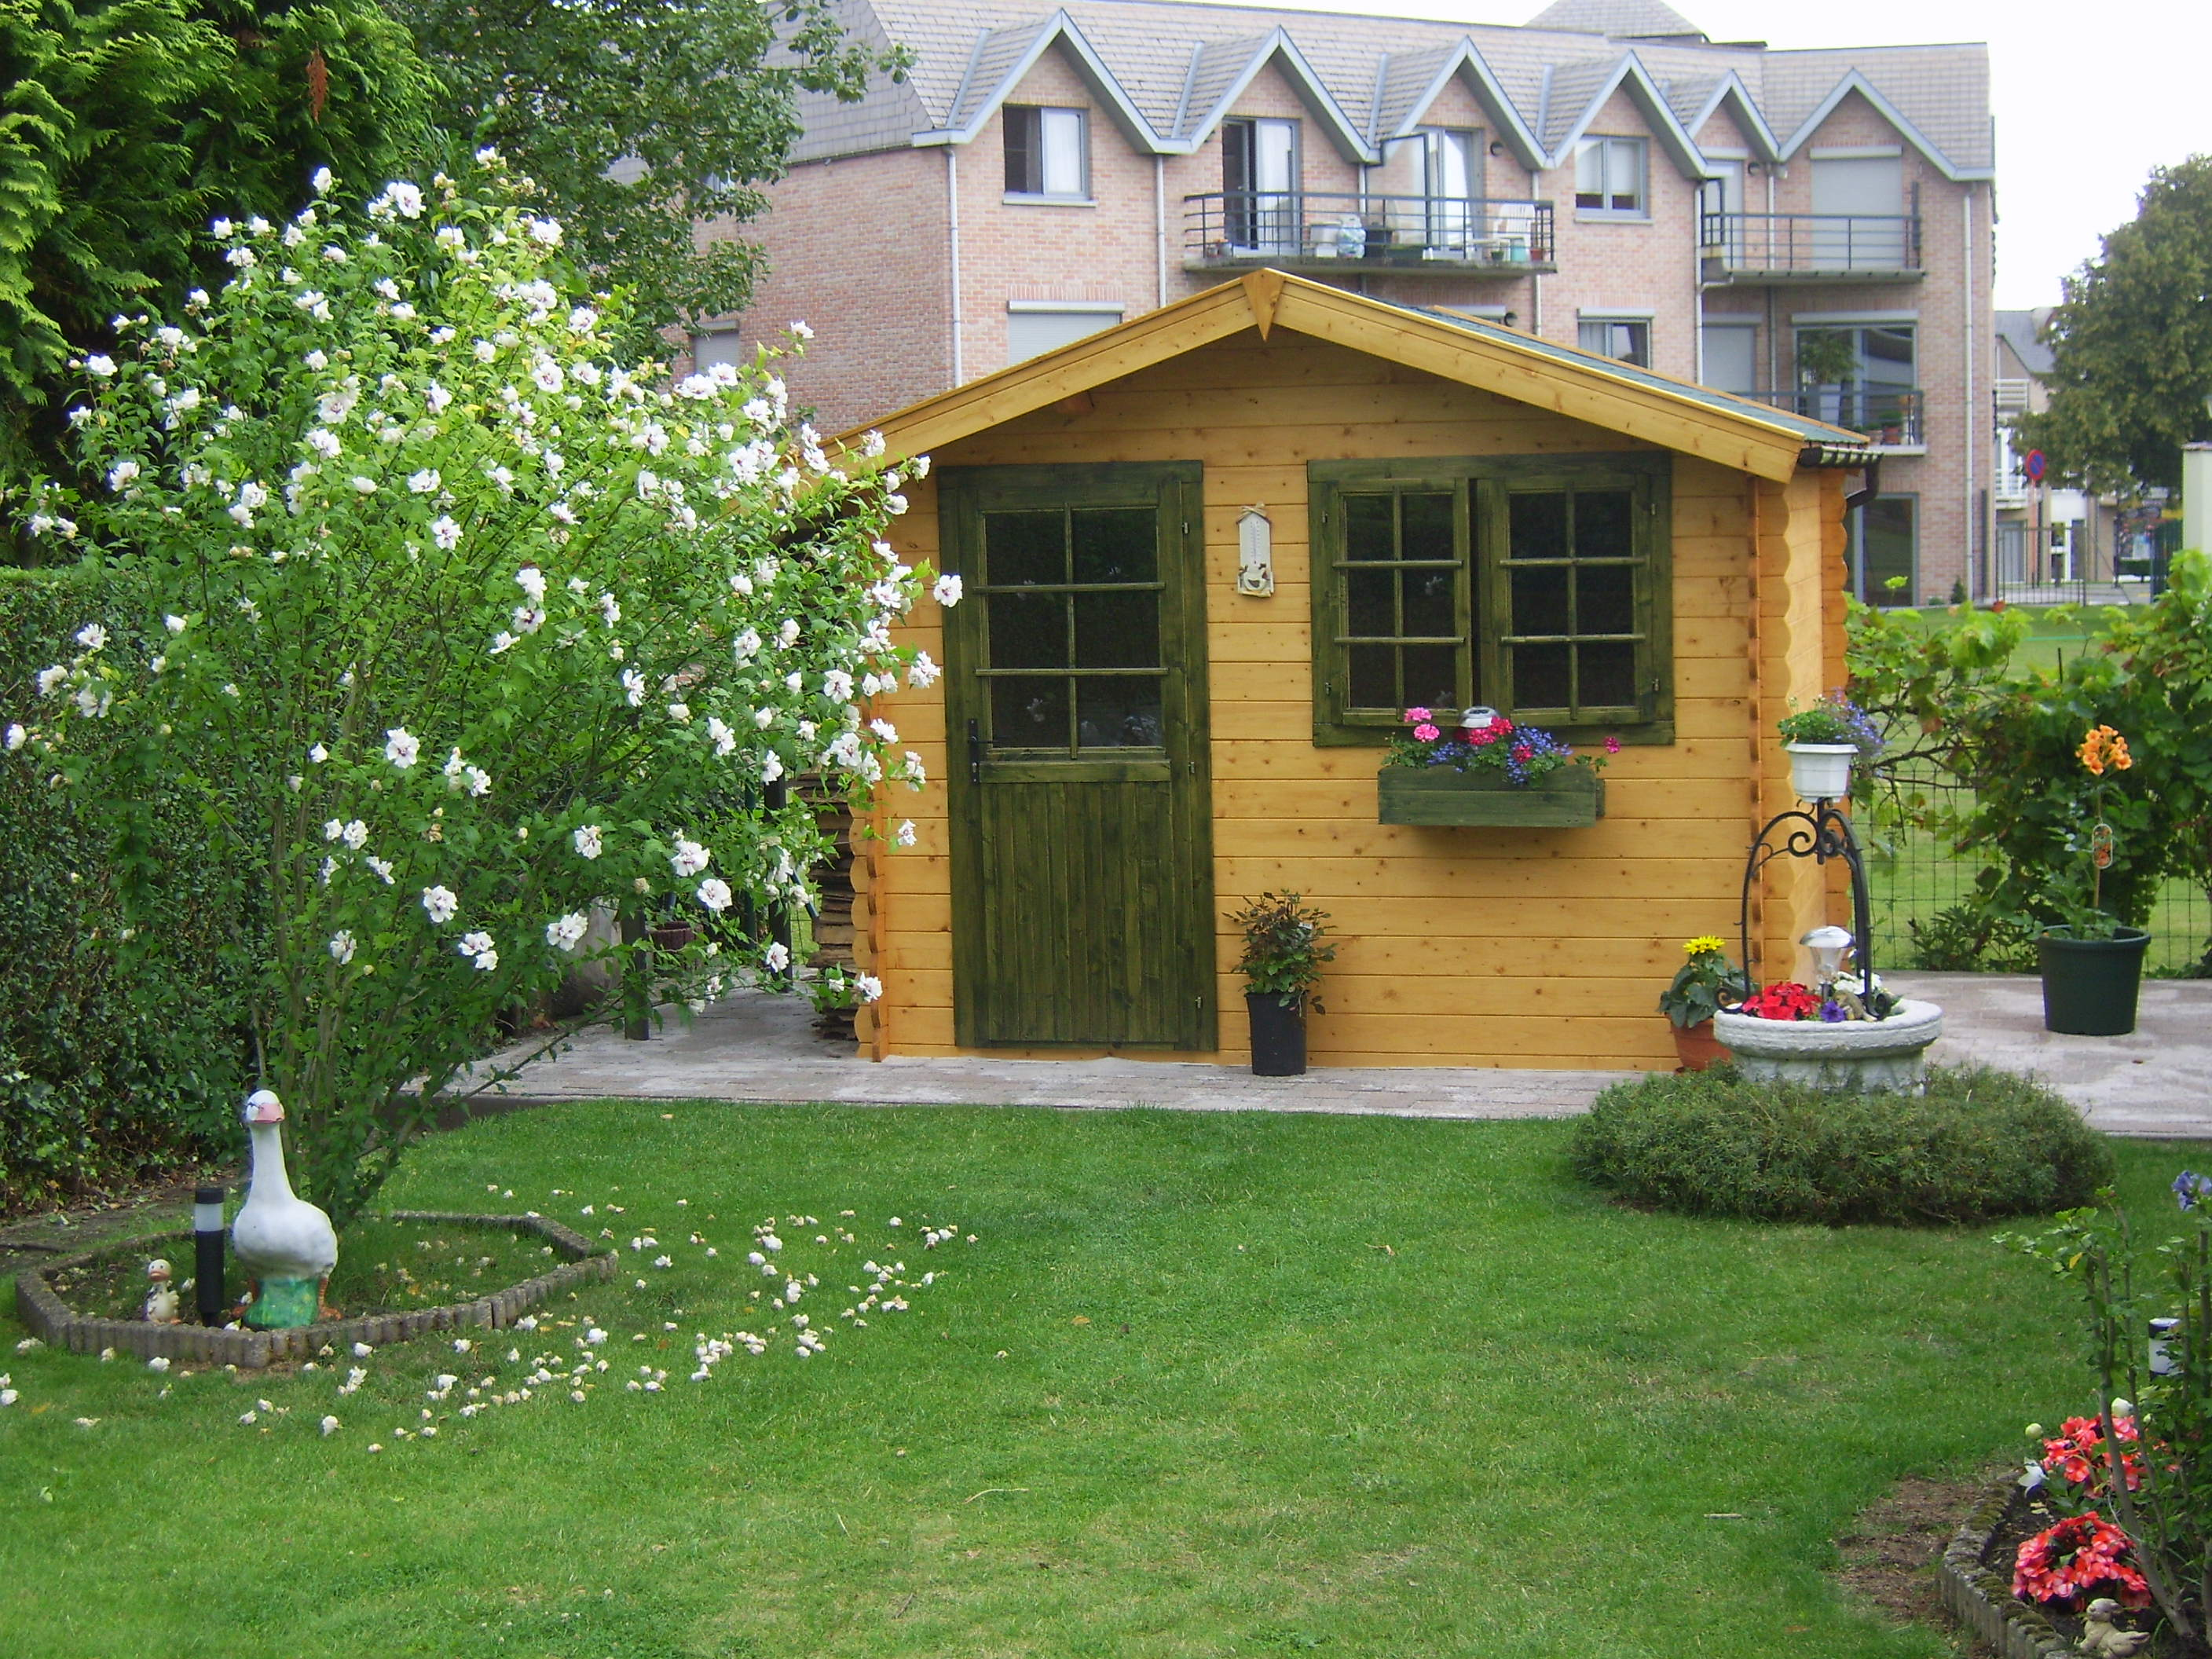 Amenagement abri jardin top blog de magicmanu amnagement for Amenagement jardin petite surface